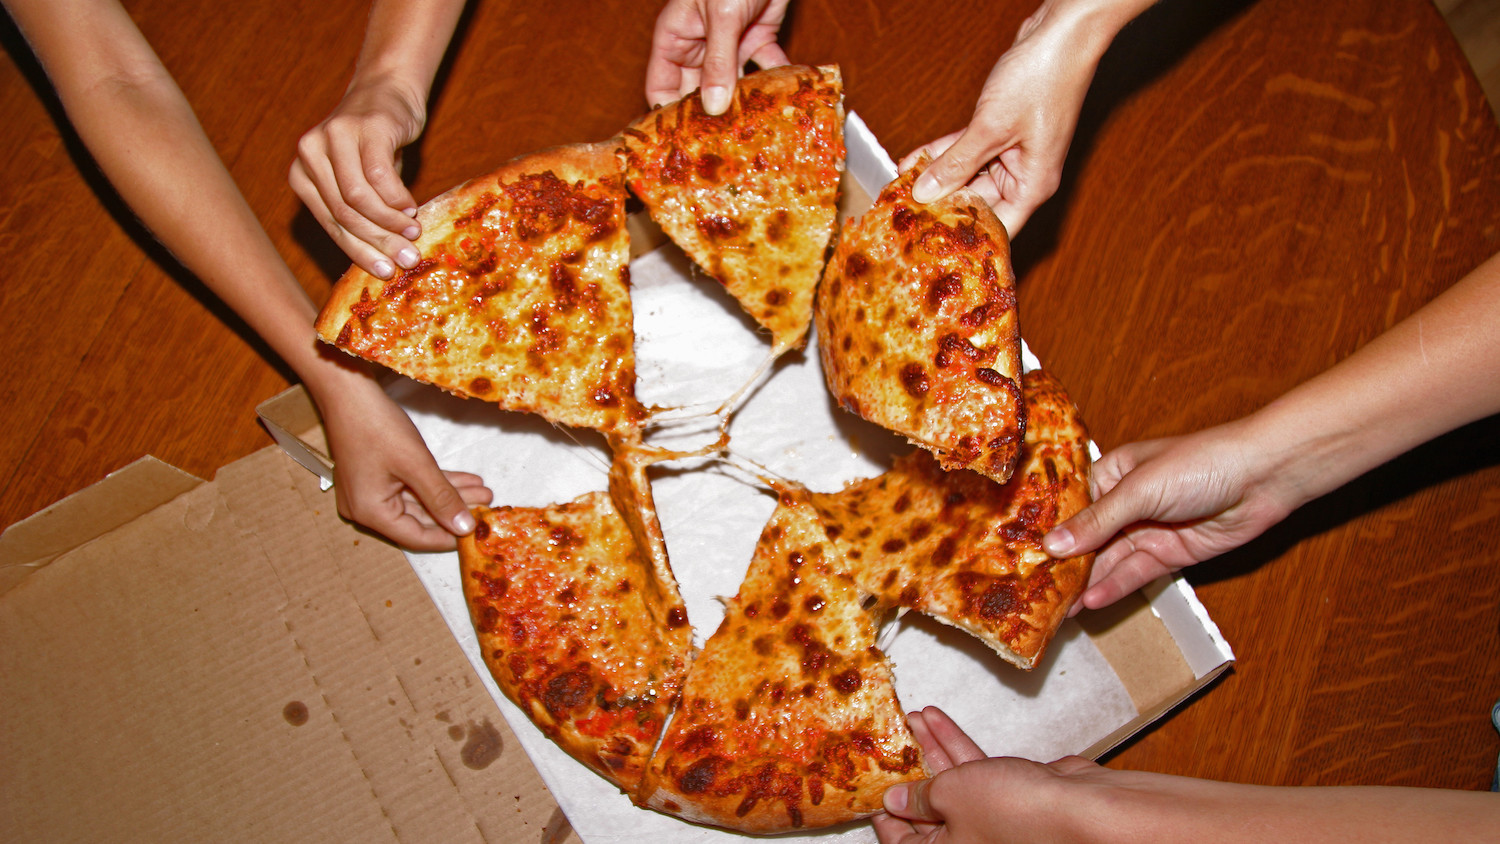 Man catches hypothermia over pizza coupon